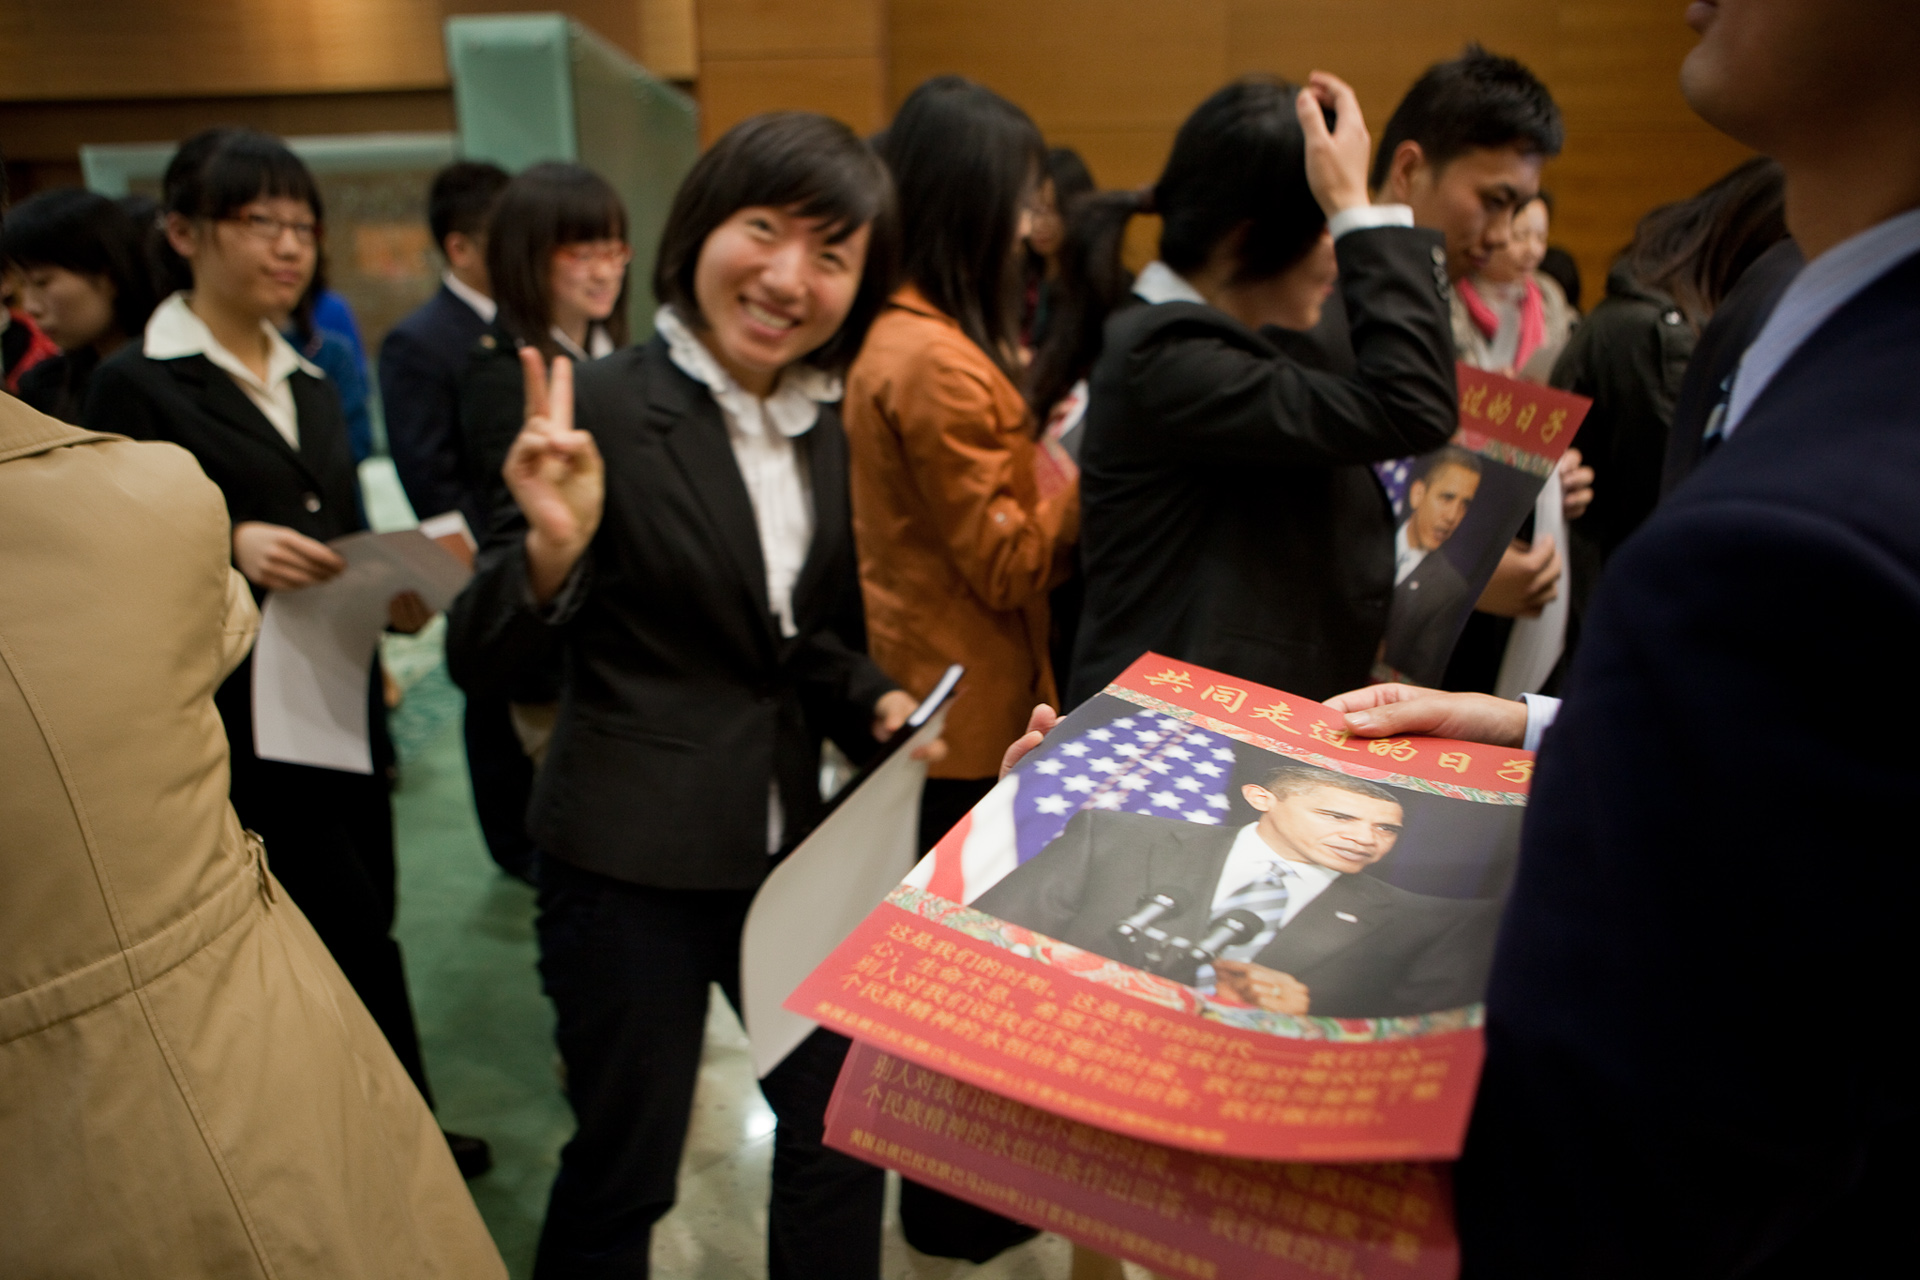 Posters commemorating President Barack Obama's appearance at the Shanghai Science and Technology Museum